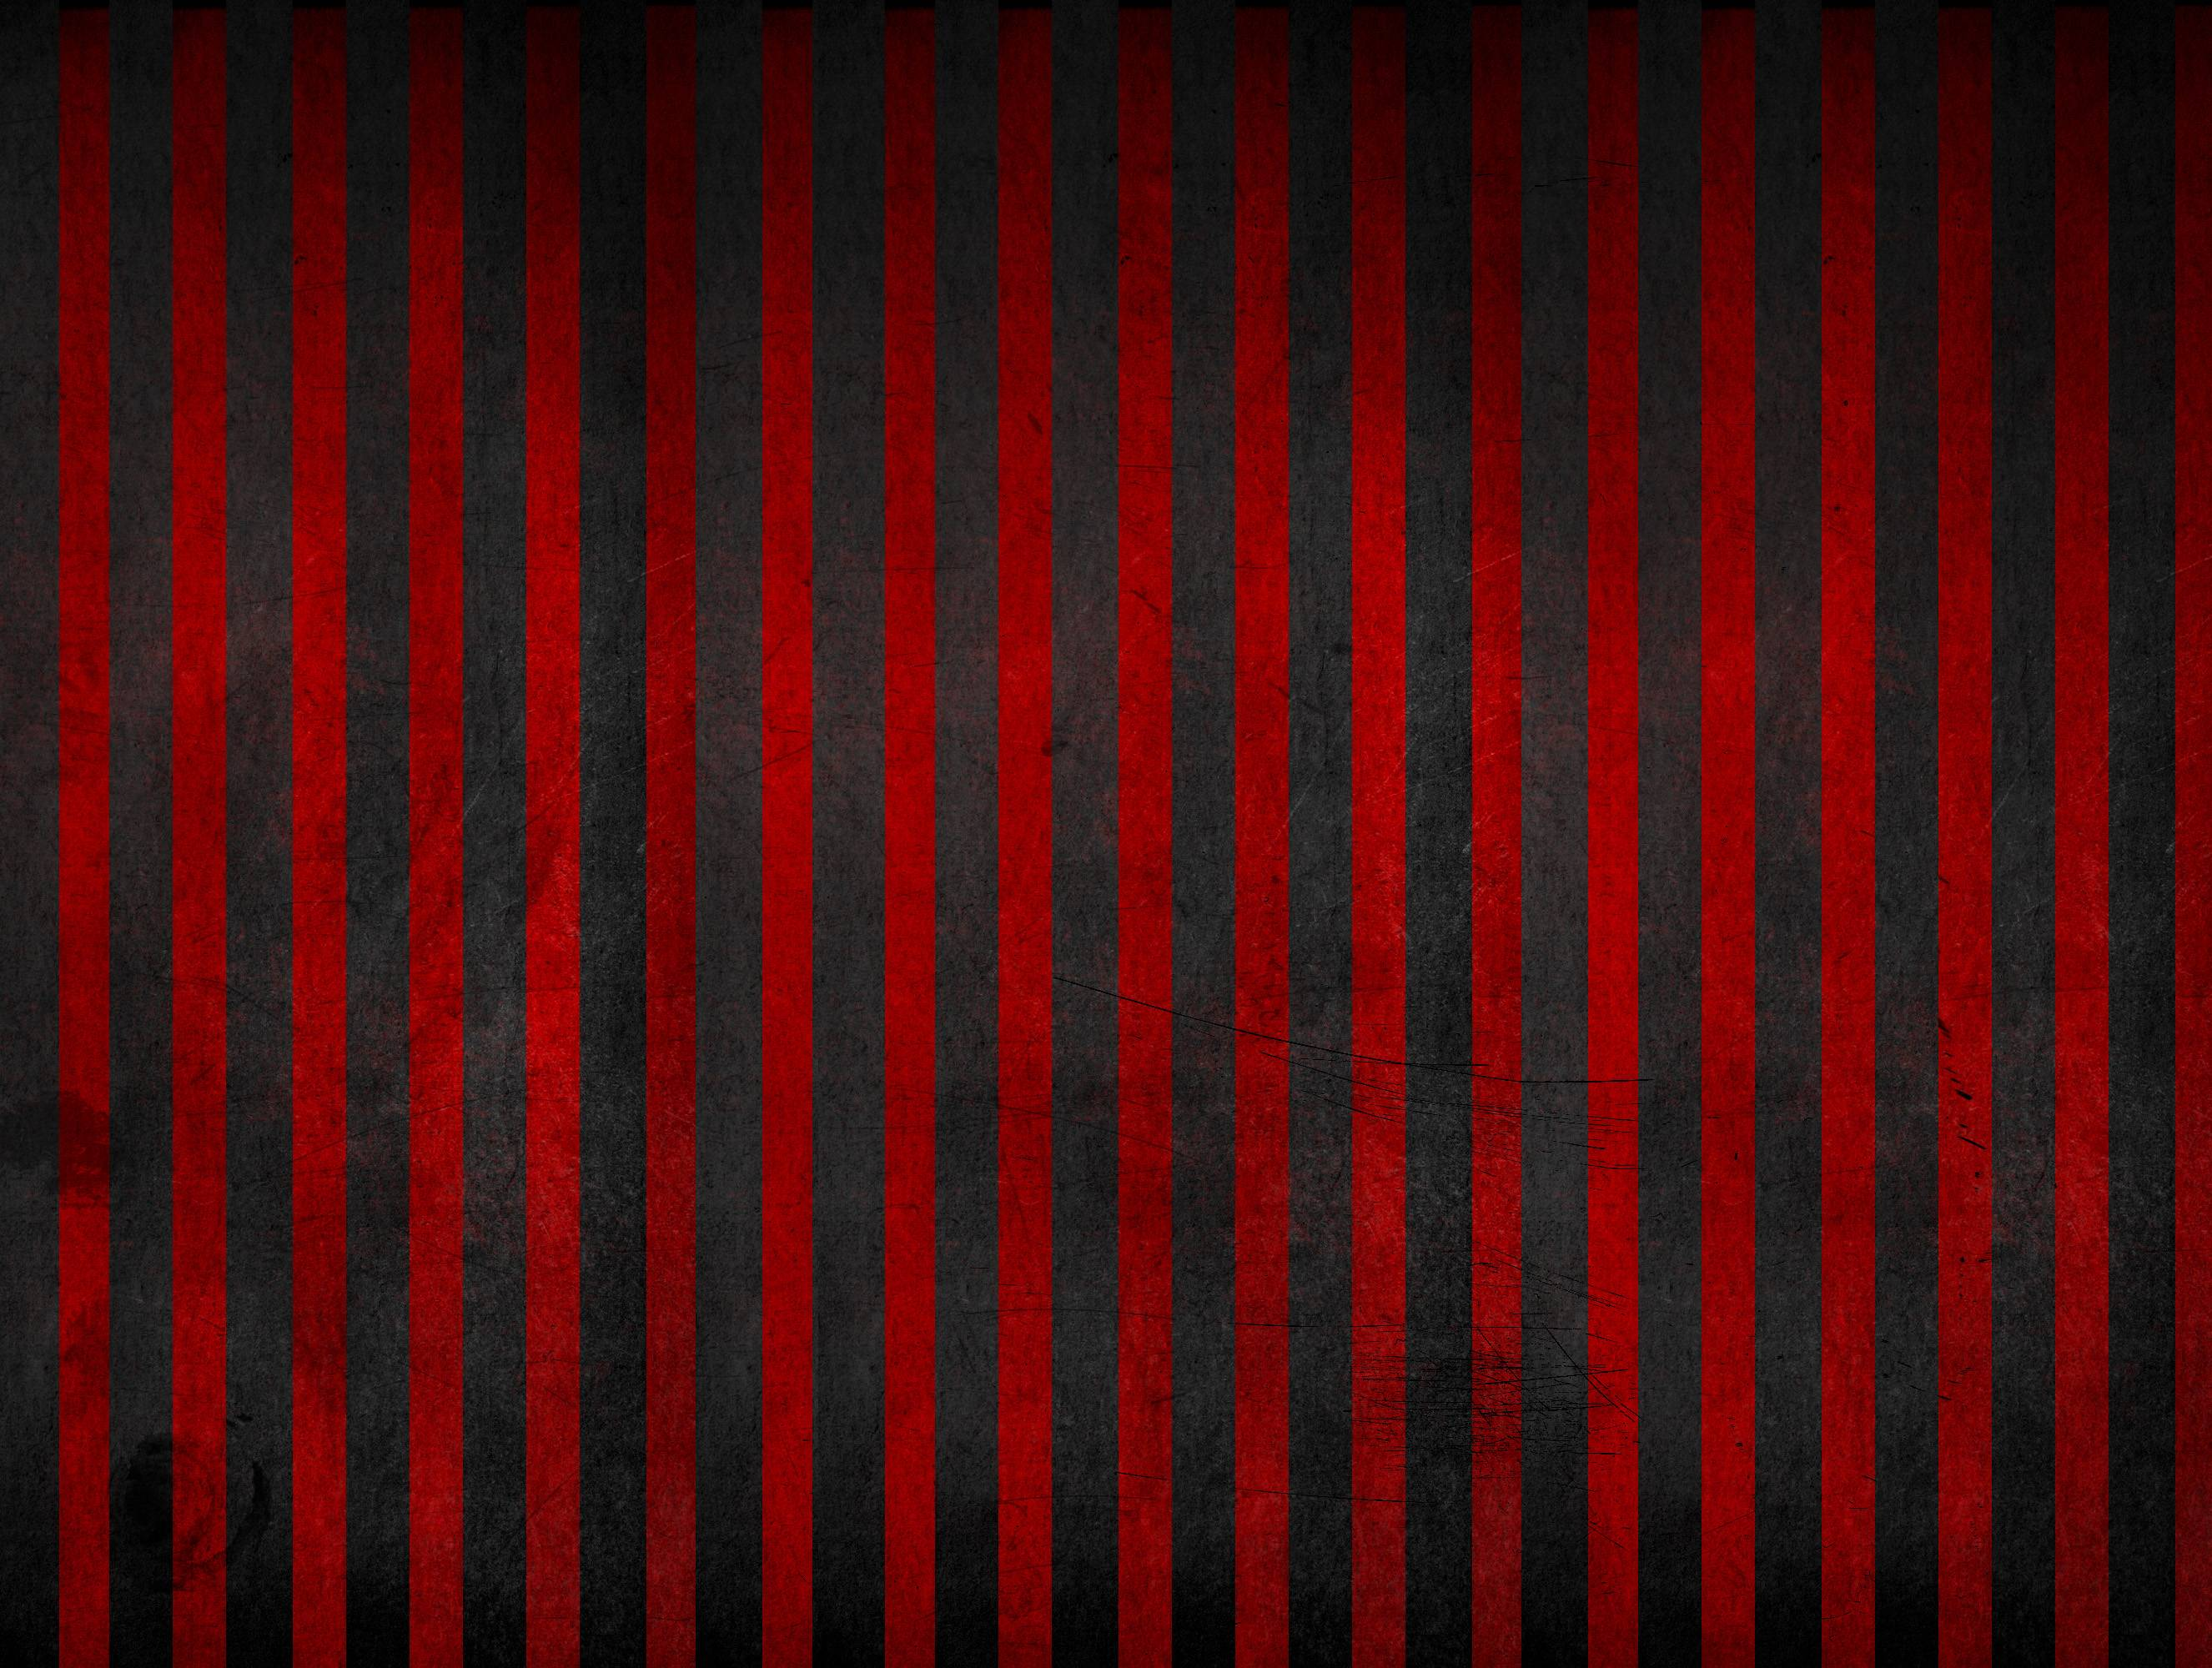 Red And Black Wallpapers 67 206396 Image HD Wallpapers